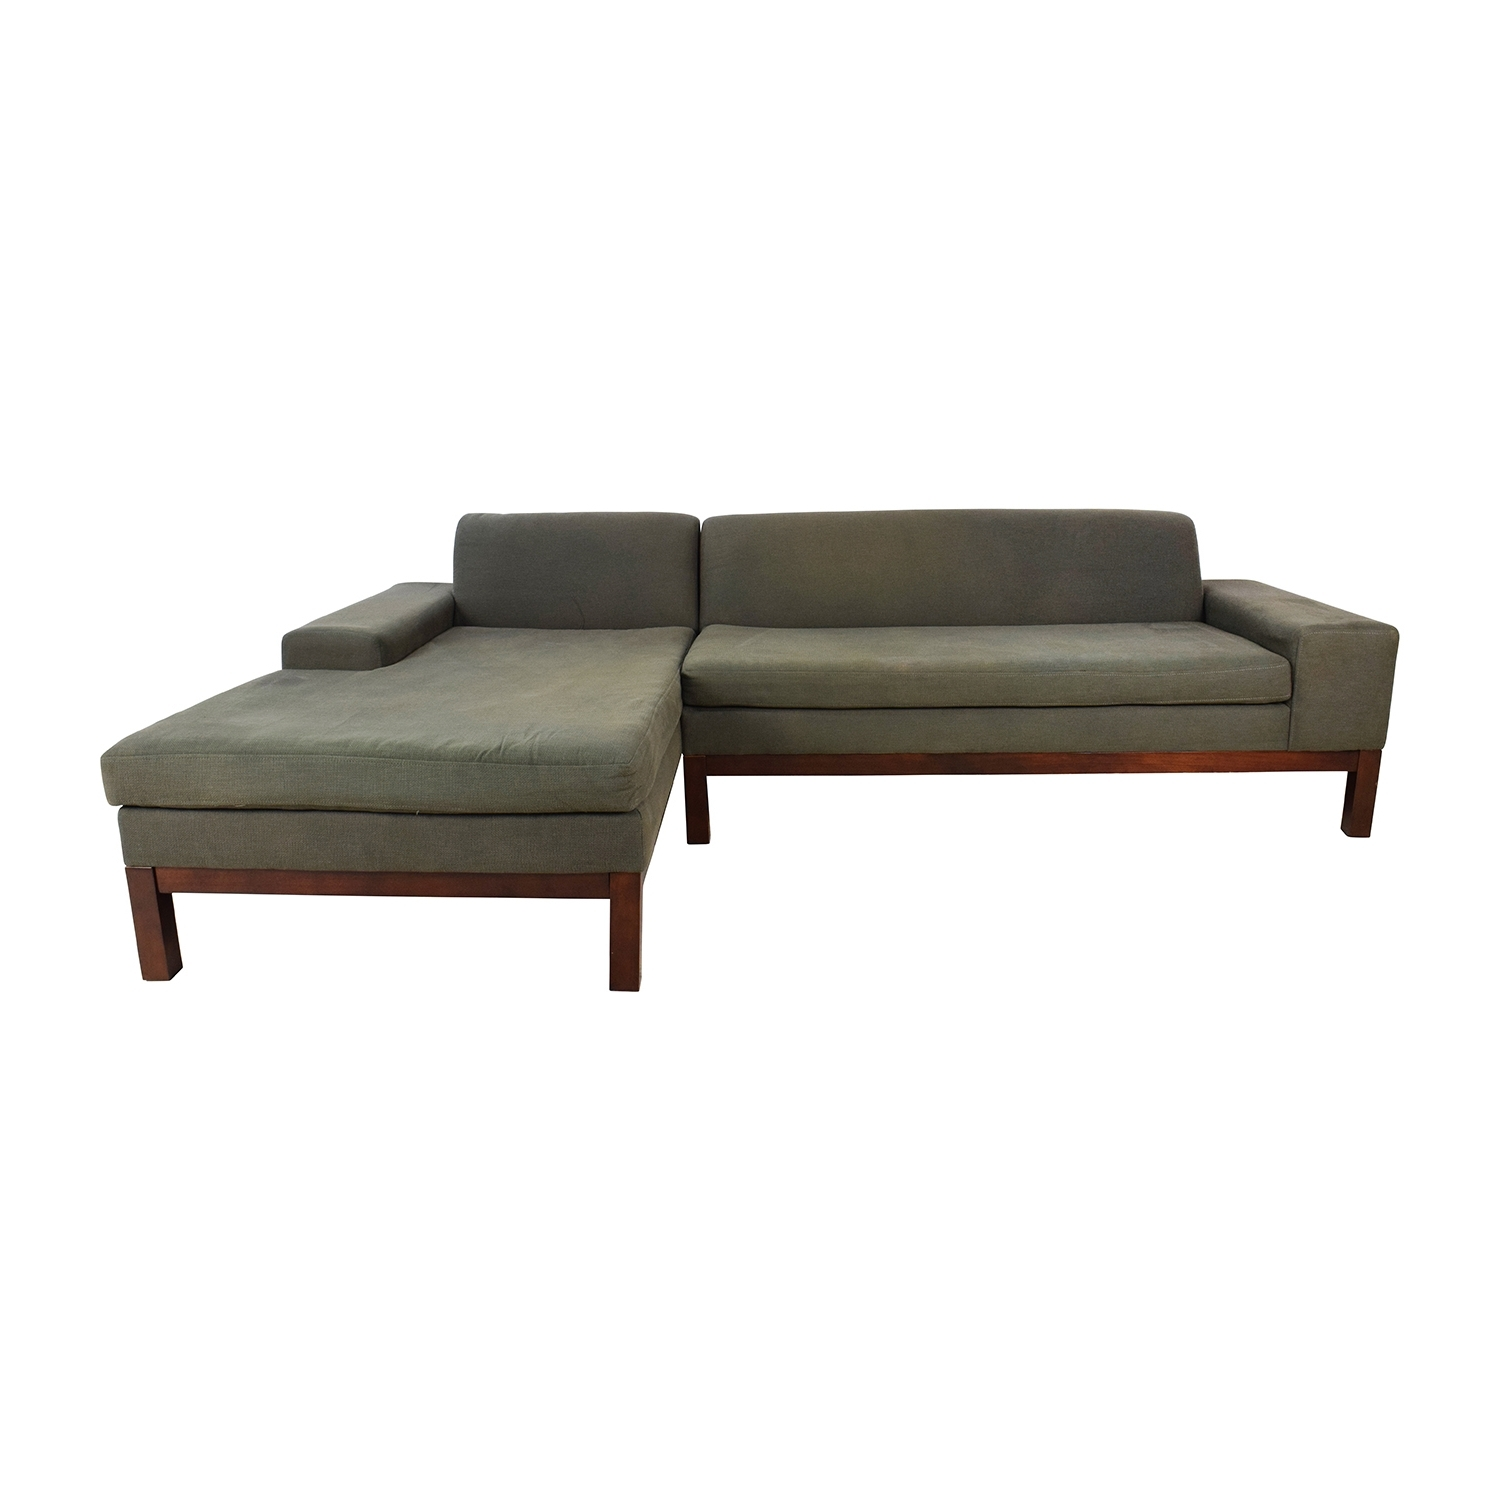 [%86% Off – West Elm West Elm Lorimer Green Sectional / Sofas Intended For Best And Newest Green Sectional Sofas With Chaise|Green Sectional Sofas With Chaise With Regard To Preferred 86% Off – West Elm West Elm Lorimer Green Sectional / Sofas|Well Known Green Sectional Sofas With Chaise Intended For 86% Off – West Elm West Elm Lorimer Green Sectional / Sofas|Most Up To Date 86% Off – West Elm West Elm Lorimer Green Sectional / Sofas Inside Green Sectional Sofas With Chaise%] (View 1 of 20)